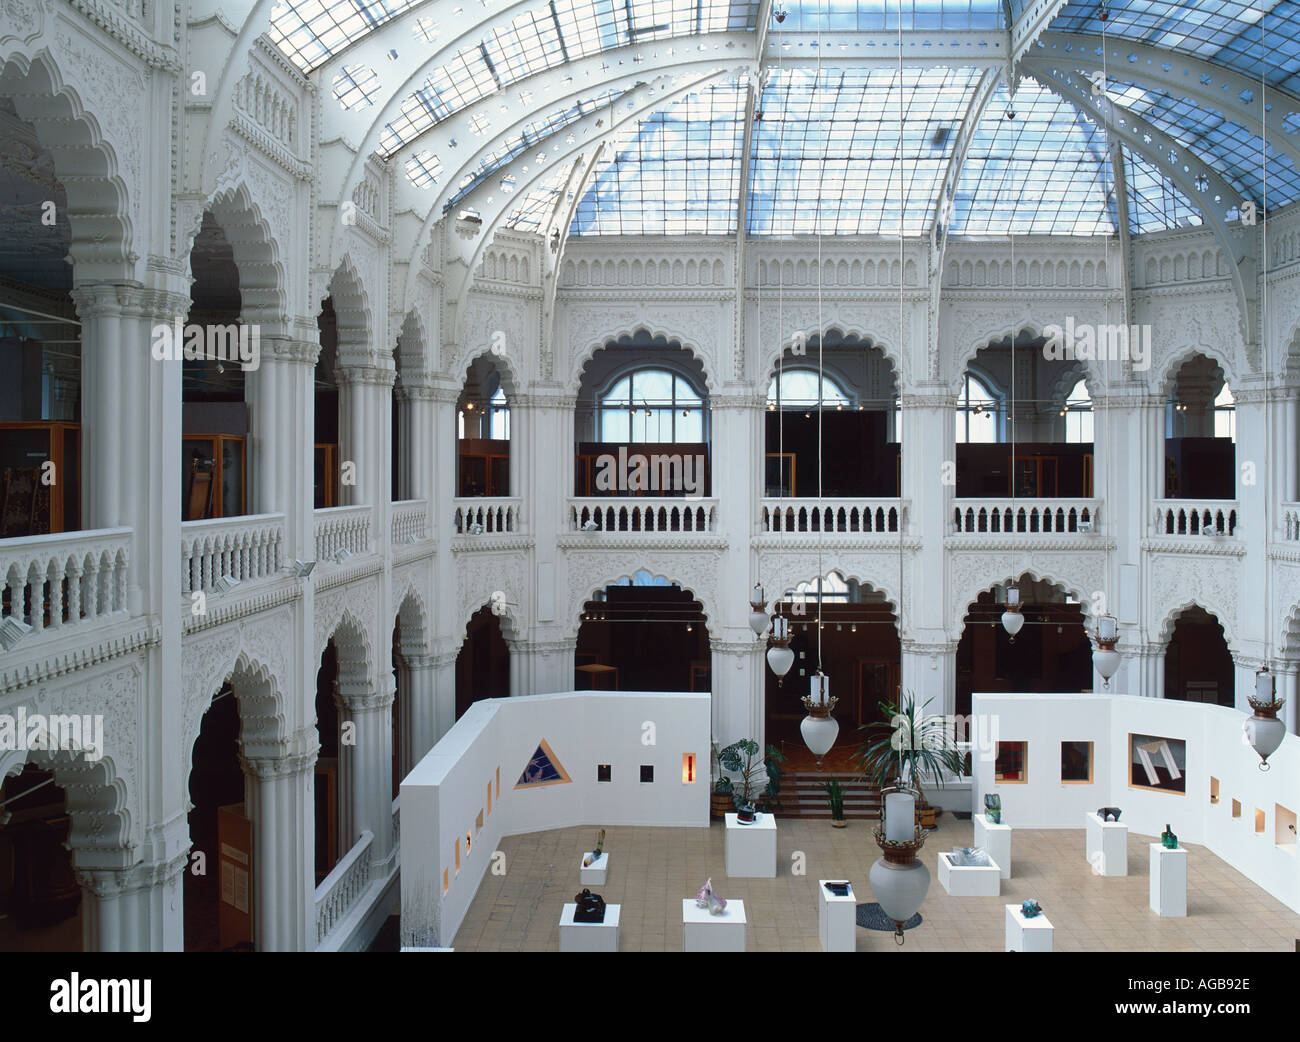 The Applied Arts Museum Built In The 1890s In Which Elements Of Stock Photo Alamy